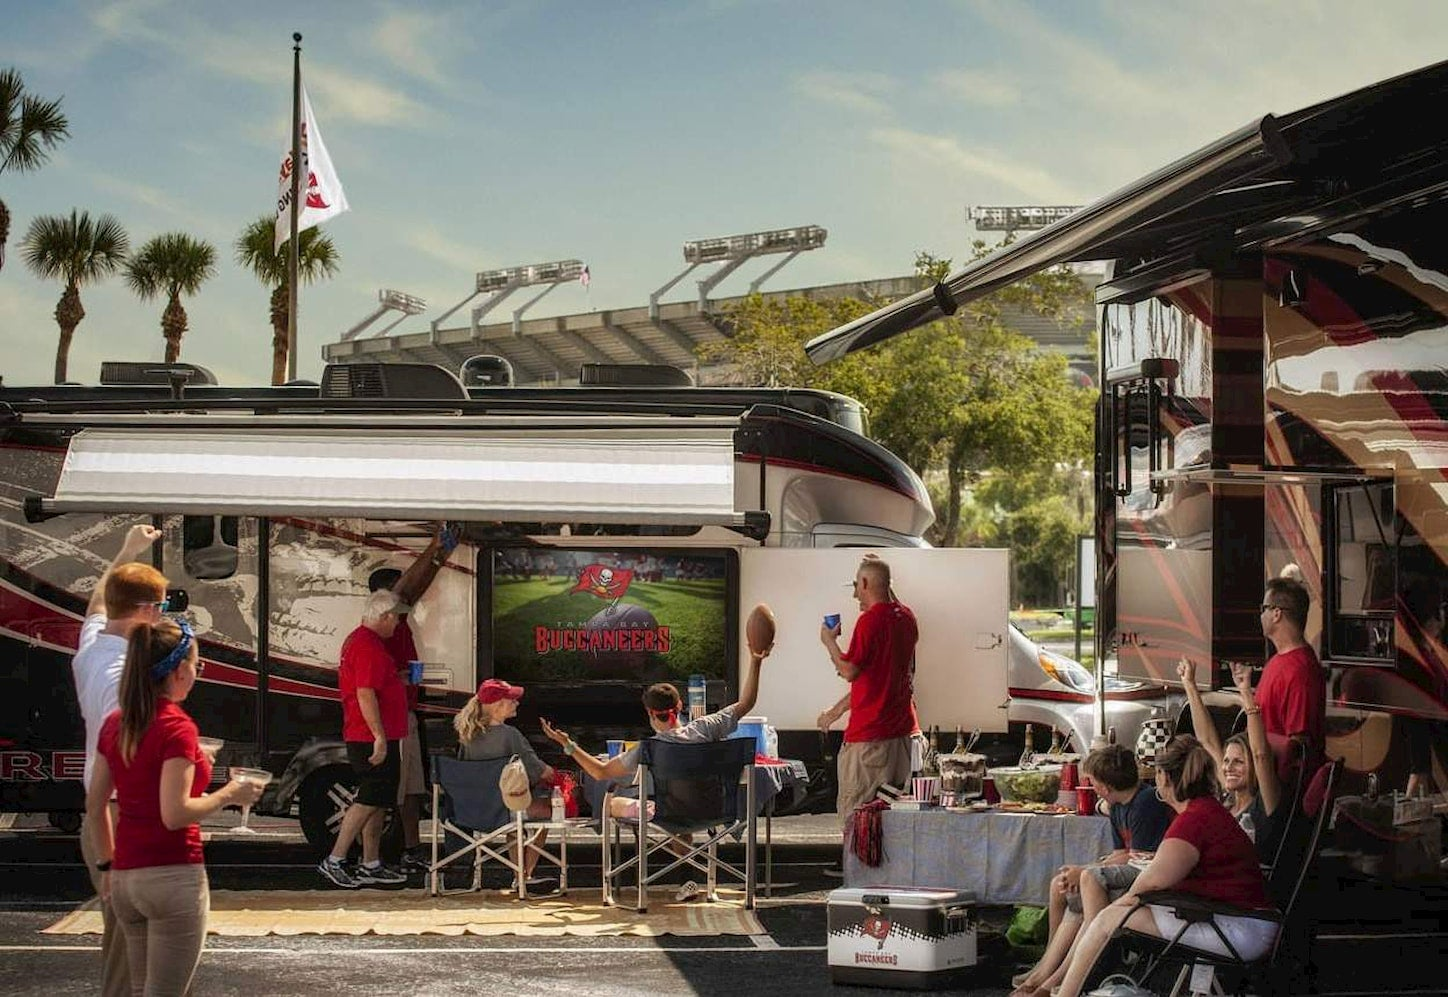 Group of tialgaters watching a t.v. in their RV outside of the stadium.